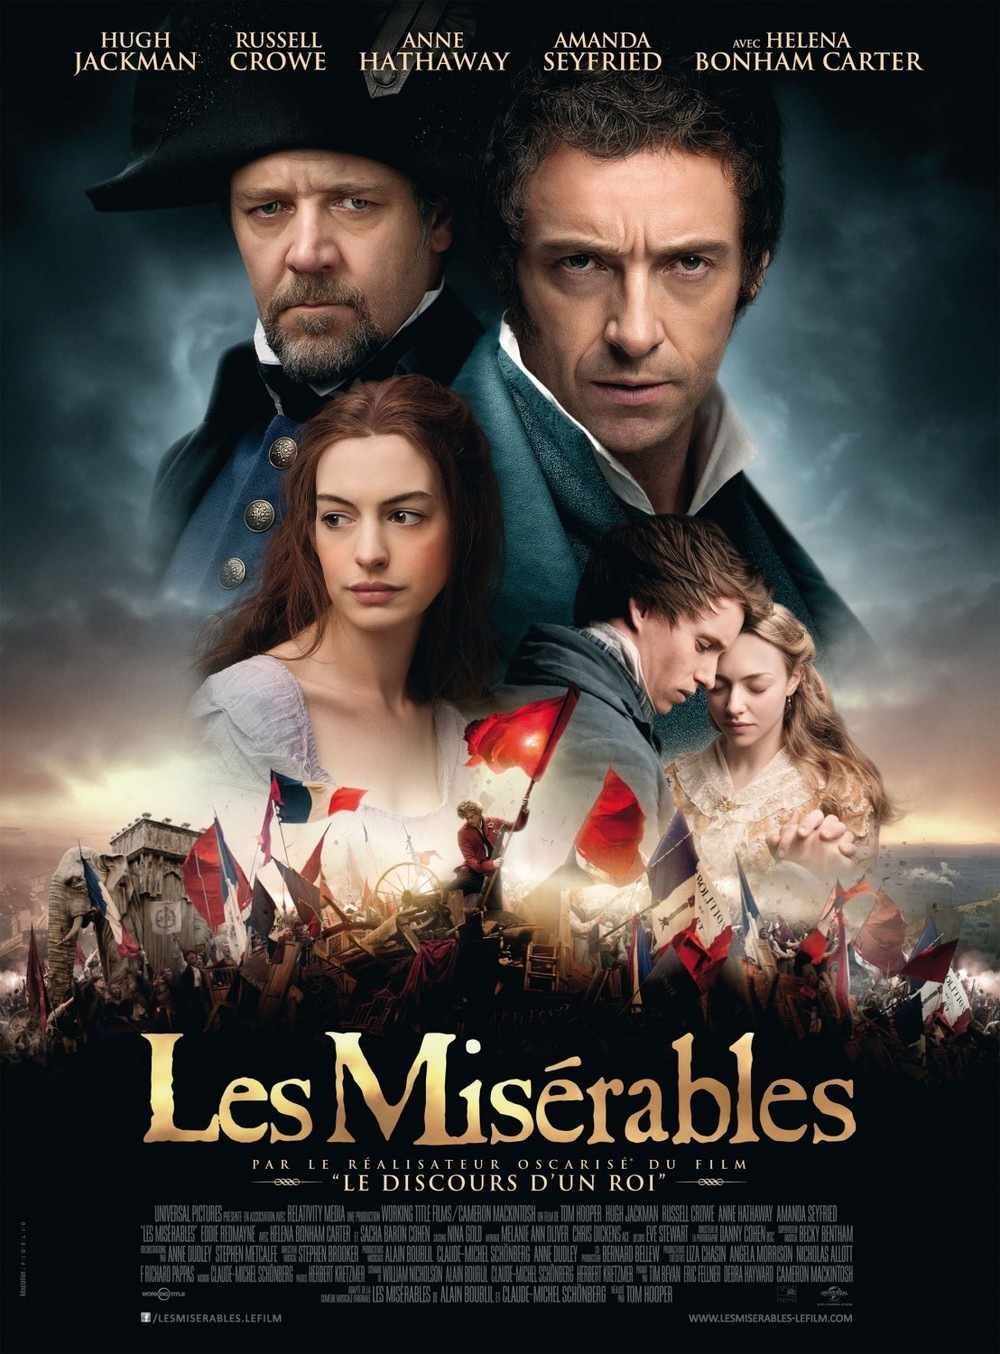 les_miserables_ver11_xlg.jpg